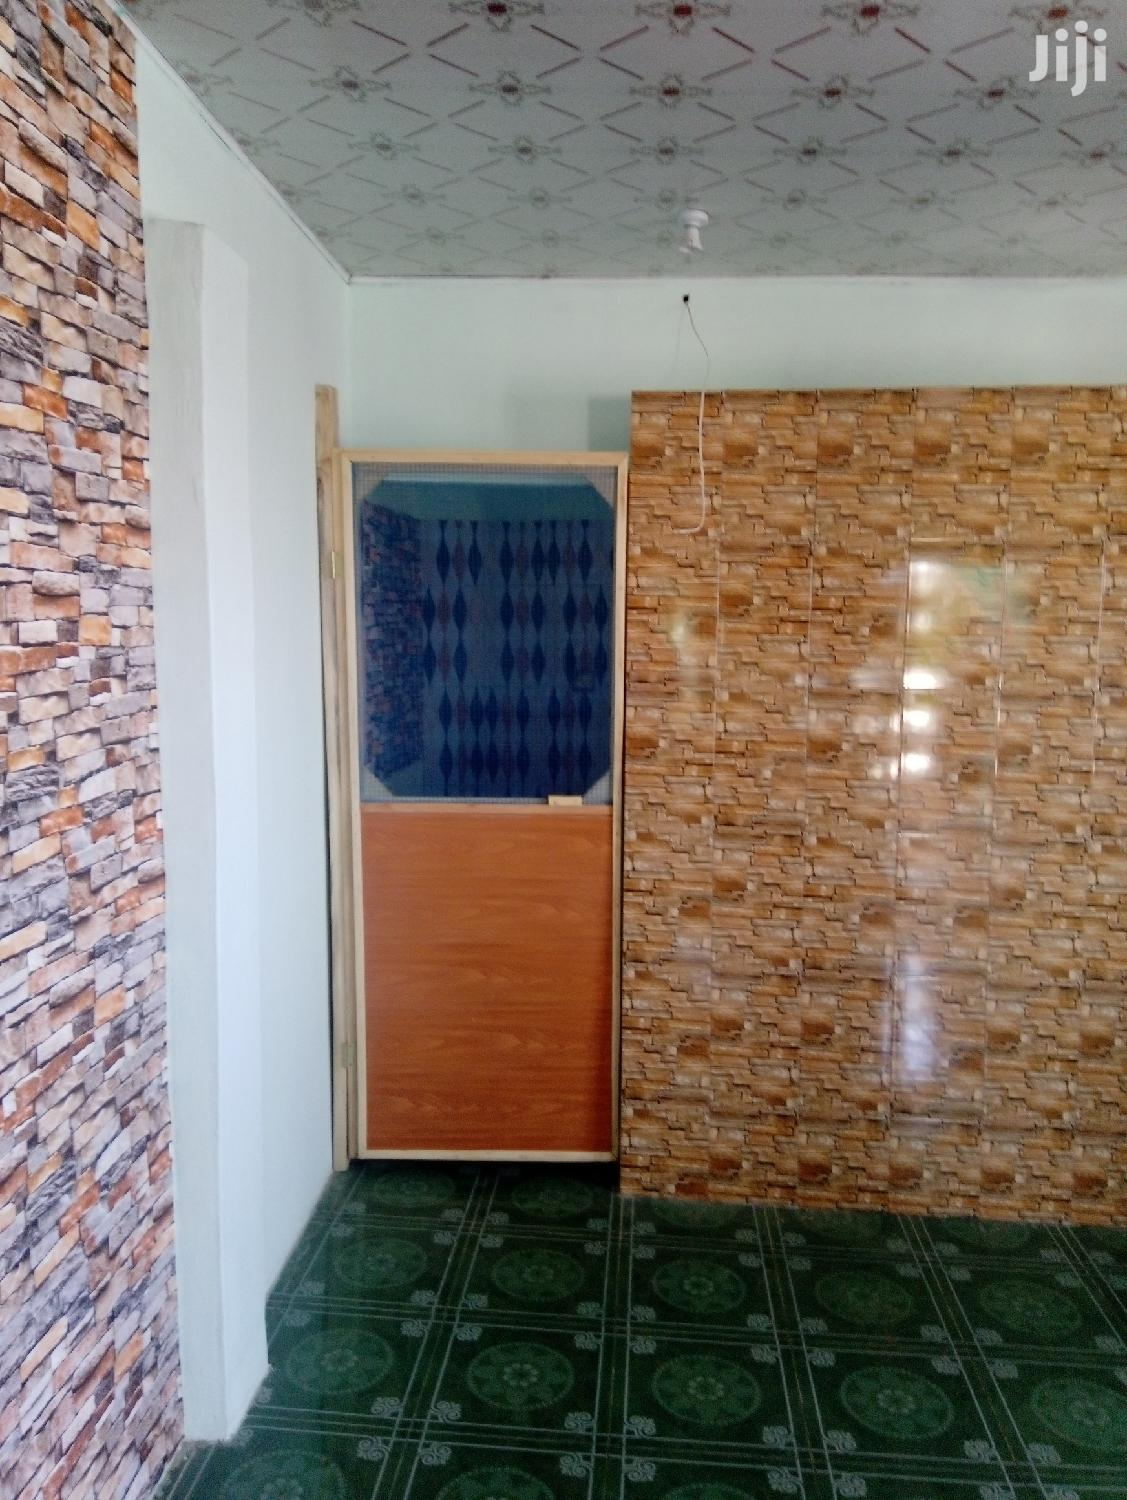 Single Room Sc-ashogman | Houses & Apartments For Rent for sale in Ga East Municipal, Greater Accra, Ghana